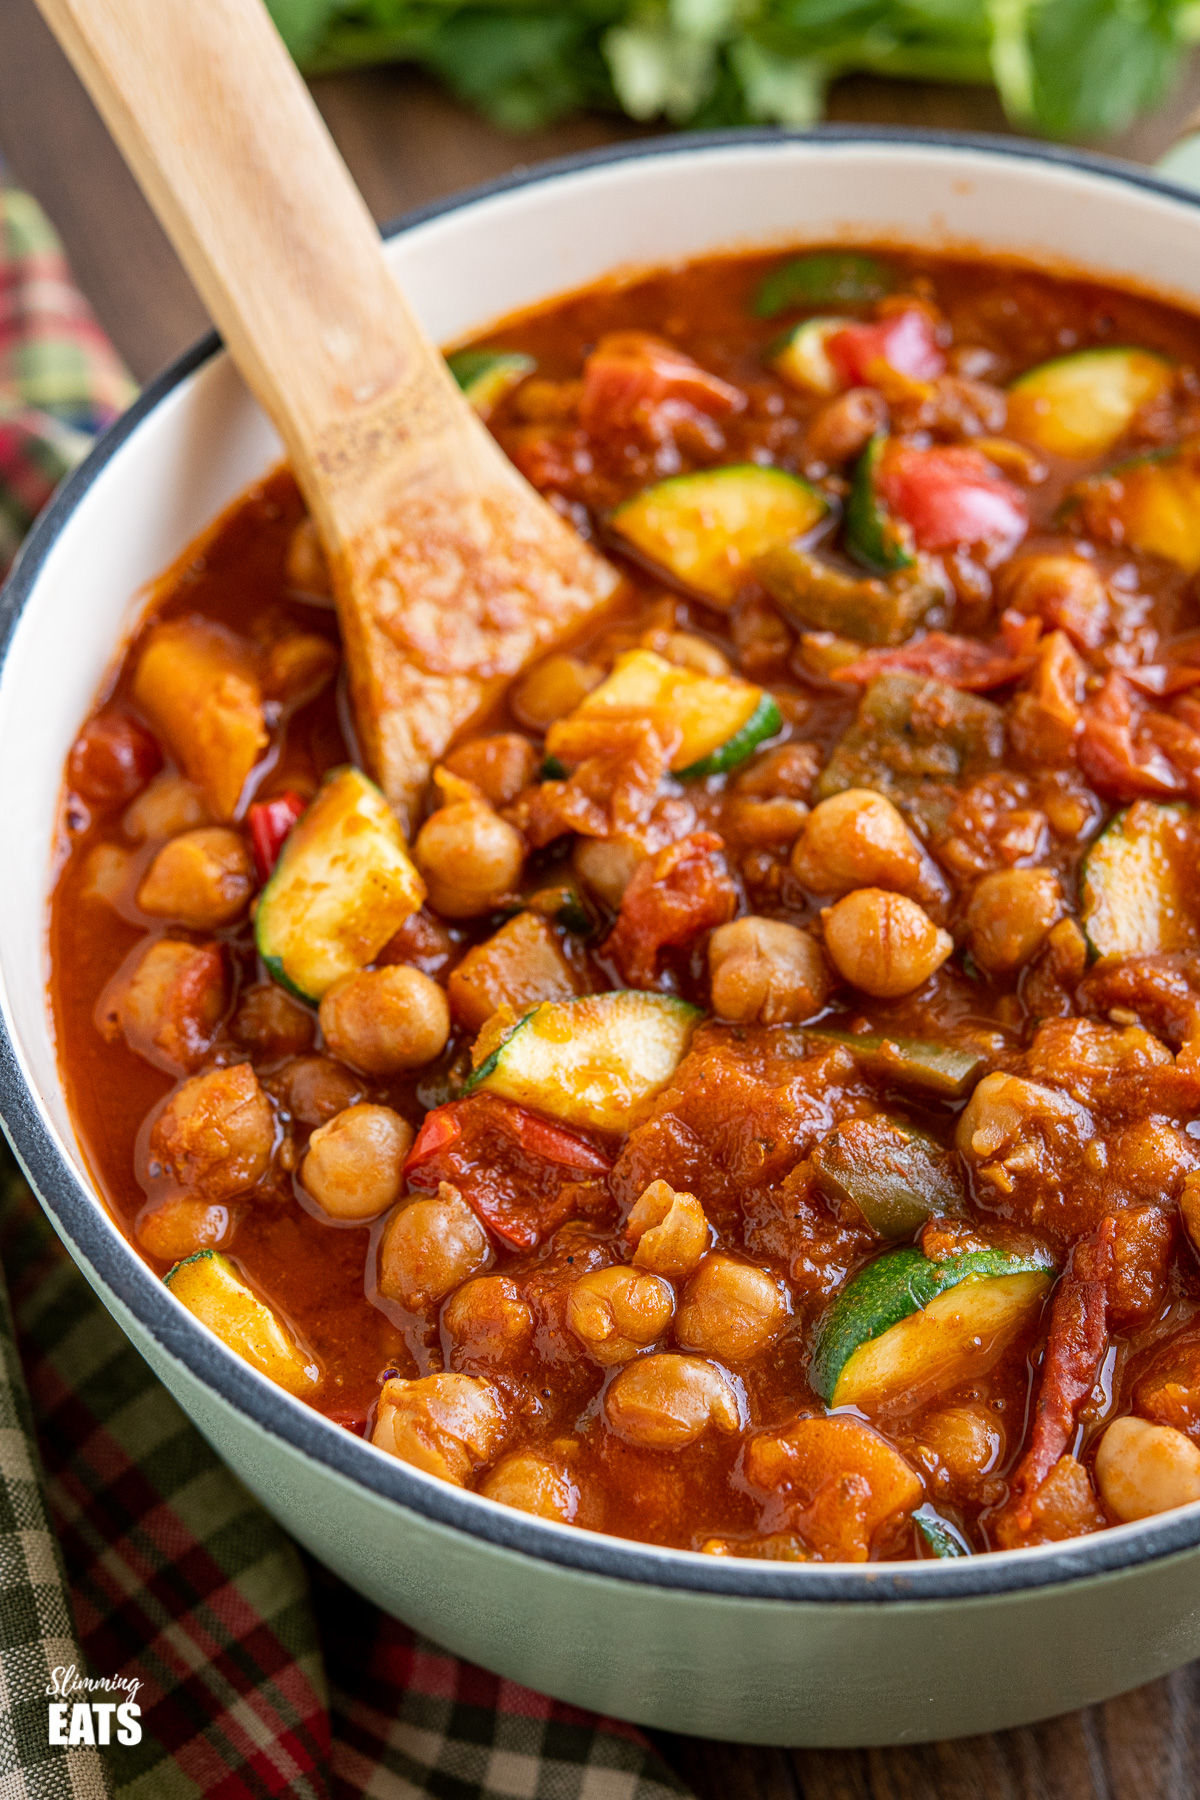 close up of chickpea vegetable chilli in cast iron saucepan with wooden spoon